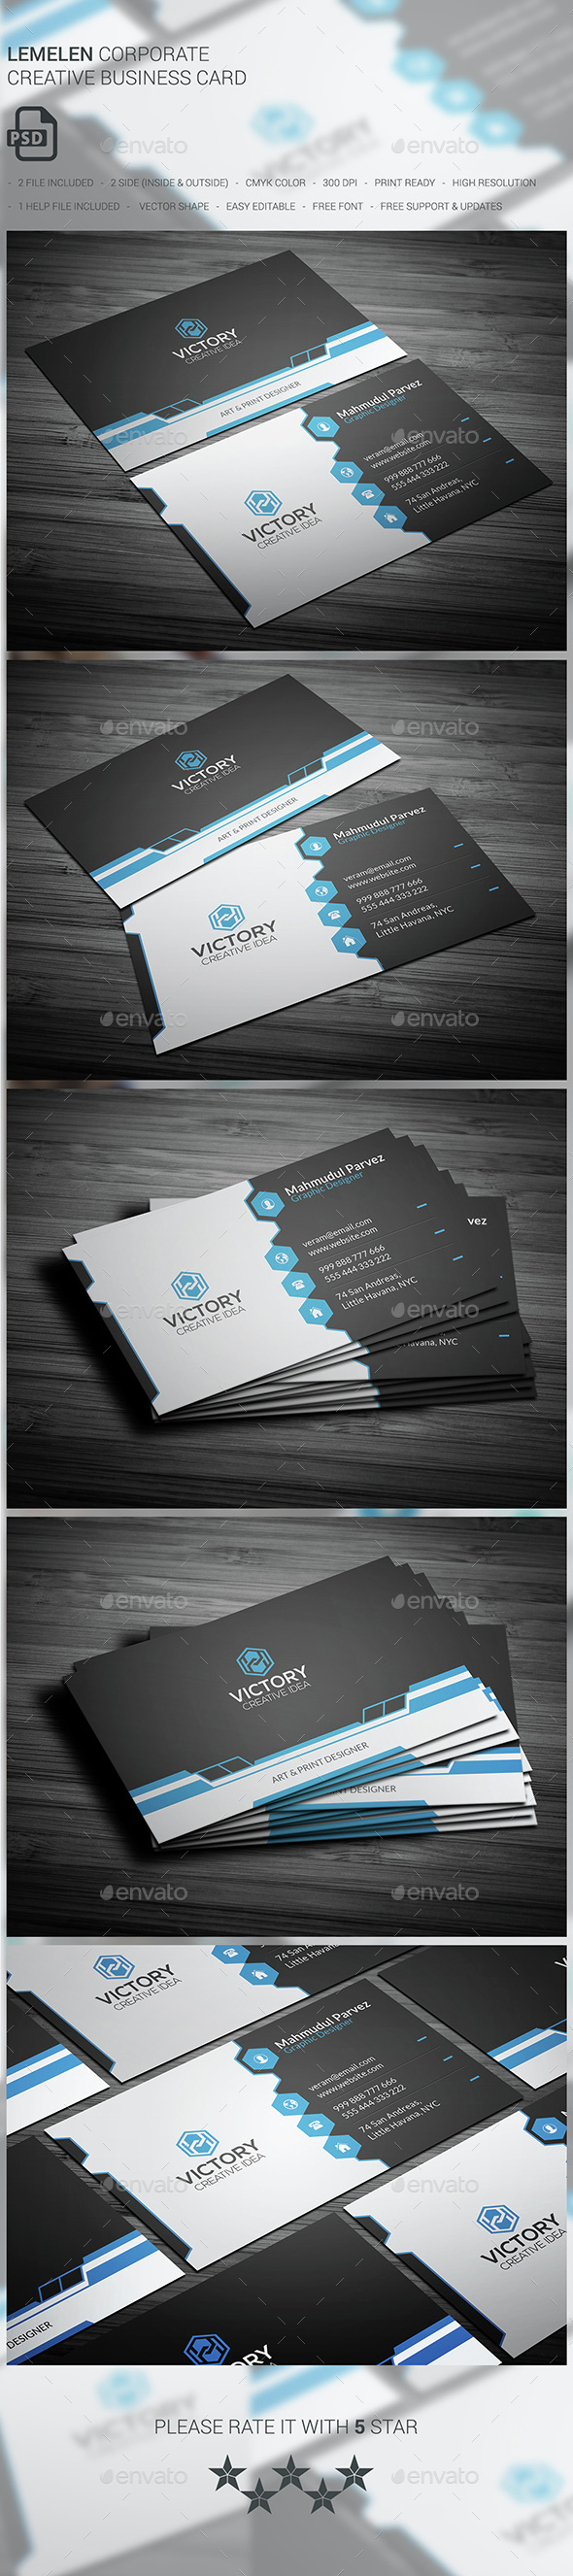 Lemelen Corporate Business Card - Corporate Business Cards